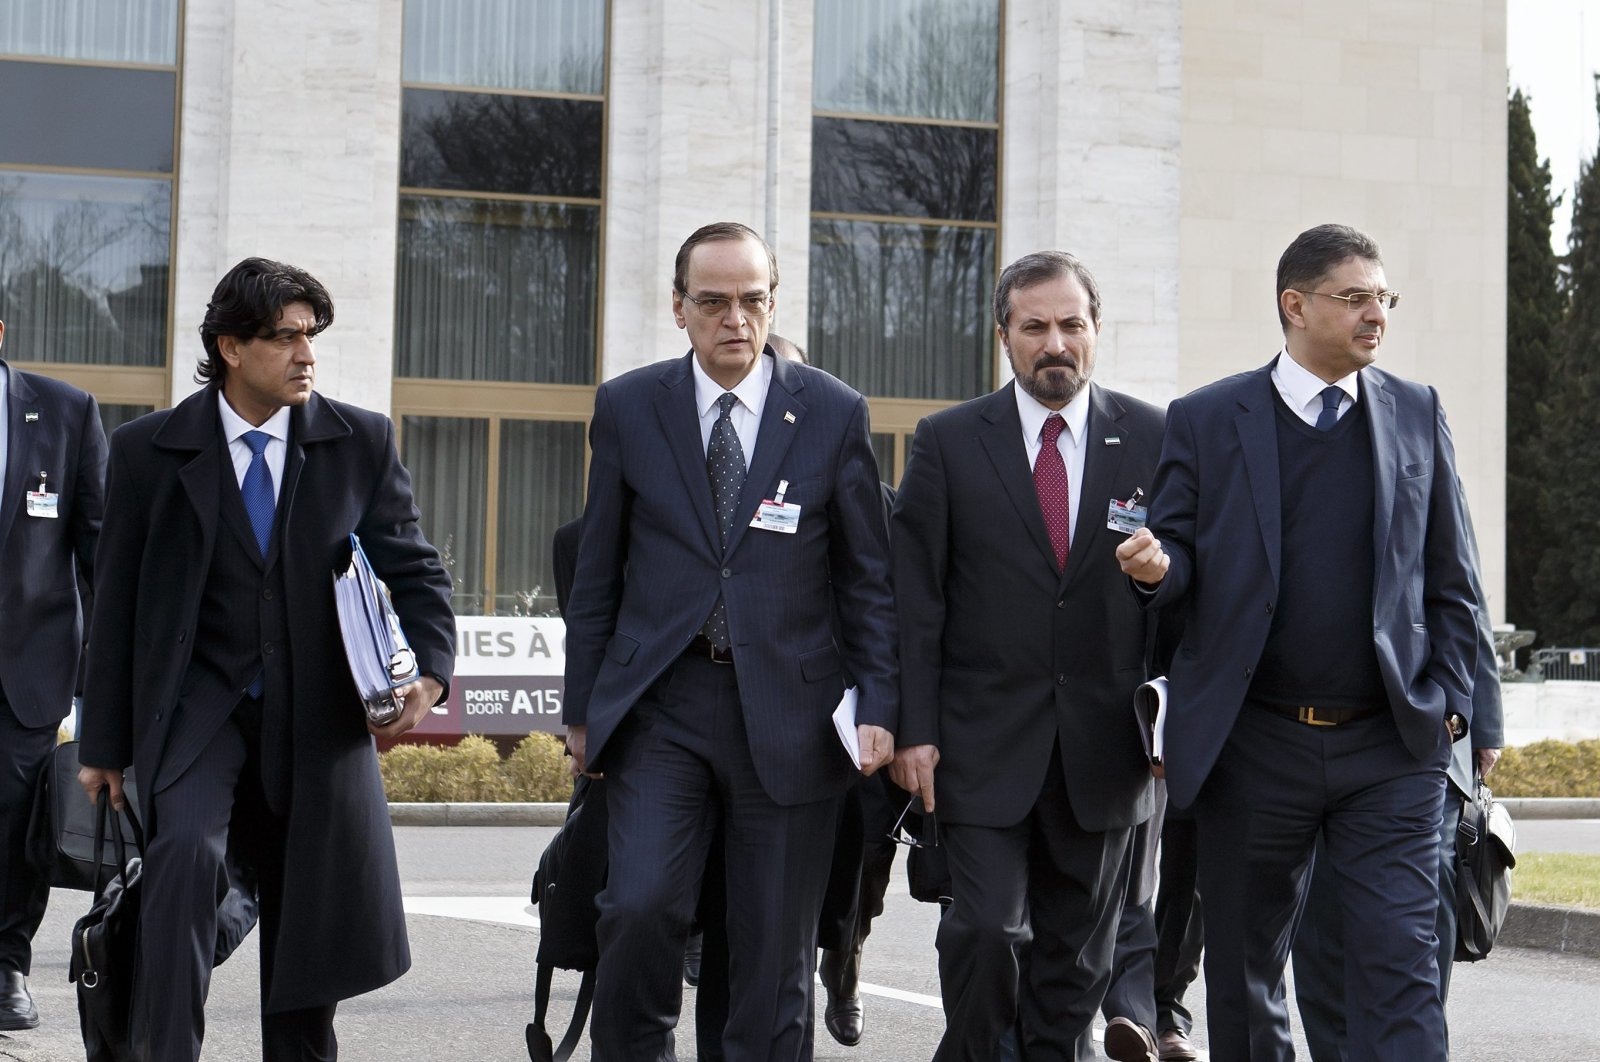 Syrian opposition chief negotiator Hadi al-Bahra (C-L) and Syrian National Coalition spokesperson Louay Safi (C-R) leave after a meeting at the European headquarters of the United Nations in Geneva, Switzerland, Jan. 26, 2014. (EPA Photo)